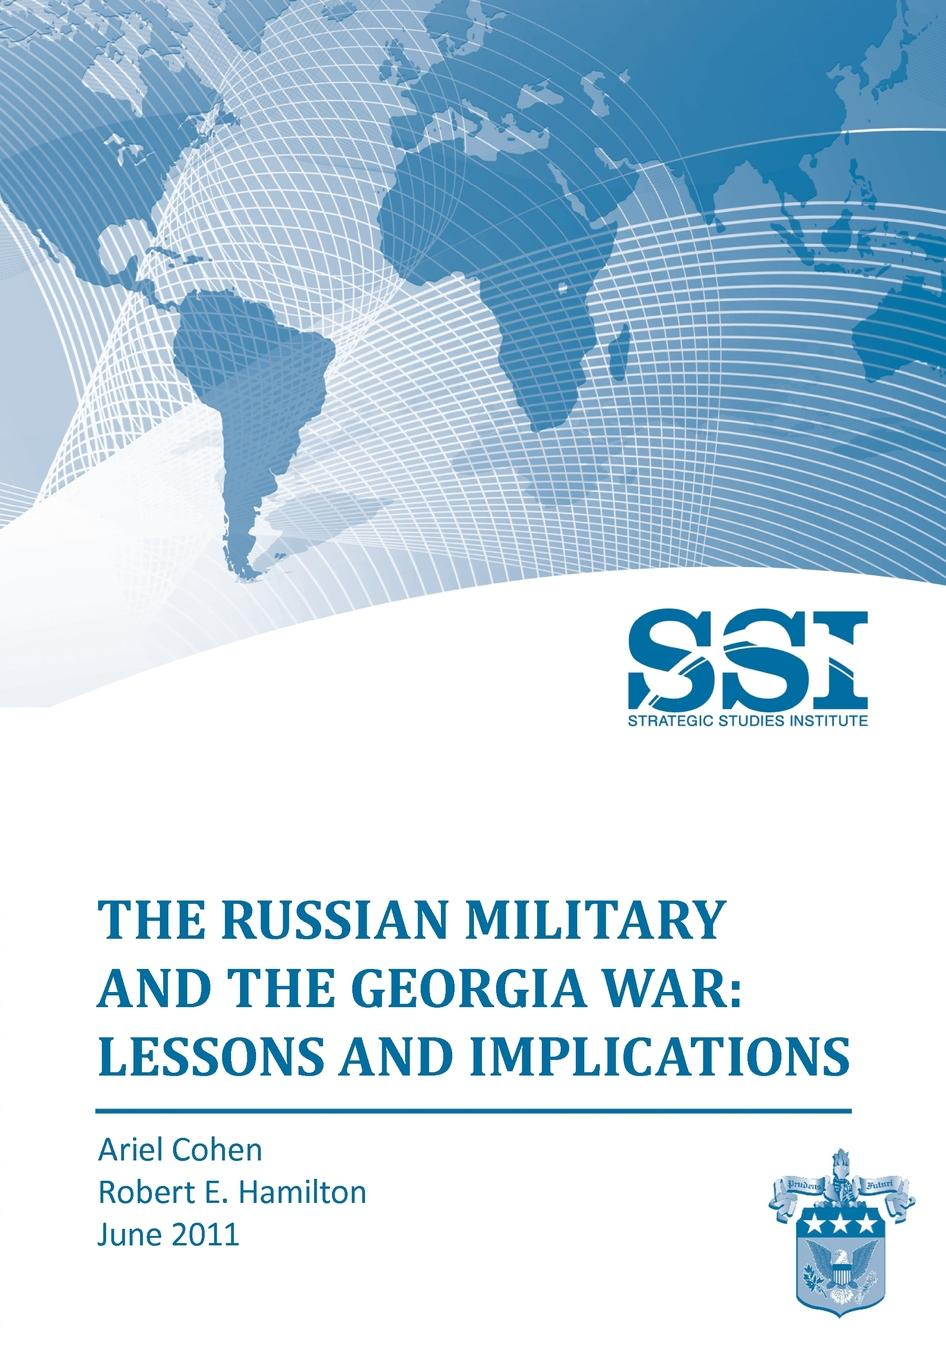 Ariel Cohen, Robert E. Hamilton, Strategic Studies Institute The Russian Military and the Georgia War. Lessons and Implications sports law in russia monograph